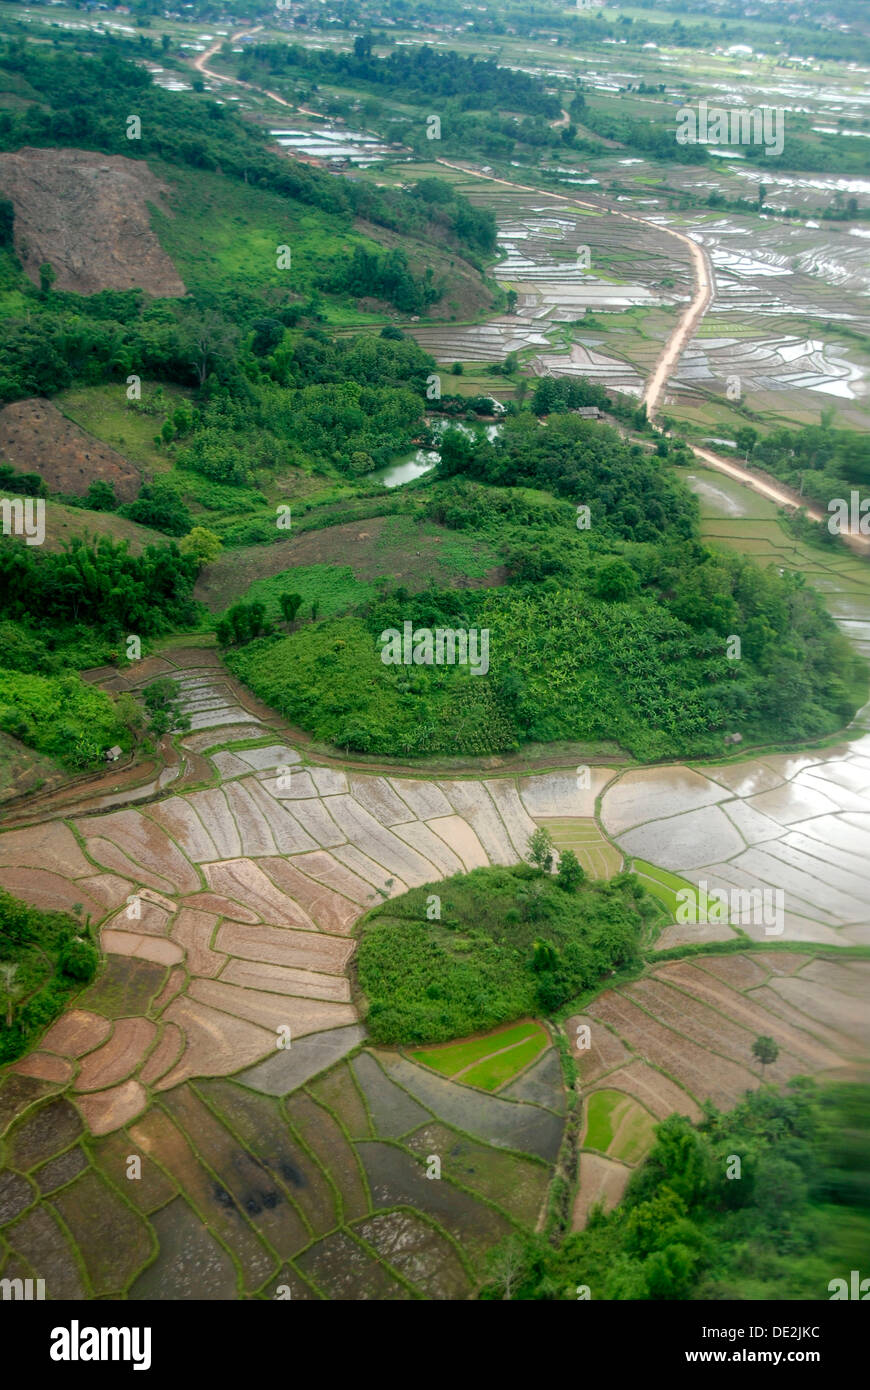 View from above on rice paddies, wet rice, Oudomxay Province, Laos, Southeast Asia, Asia Stock Photo